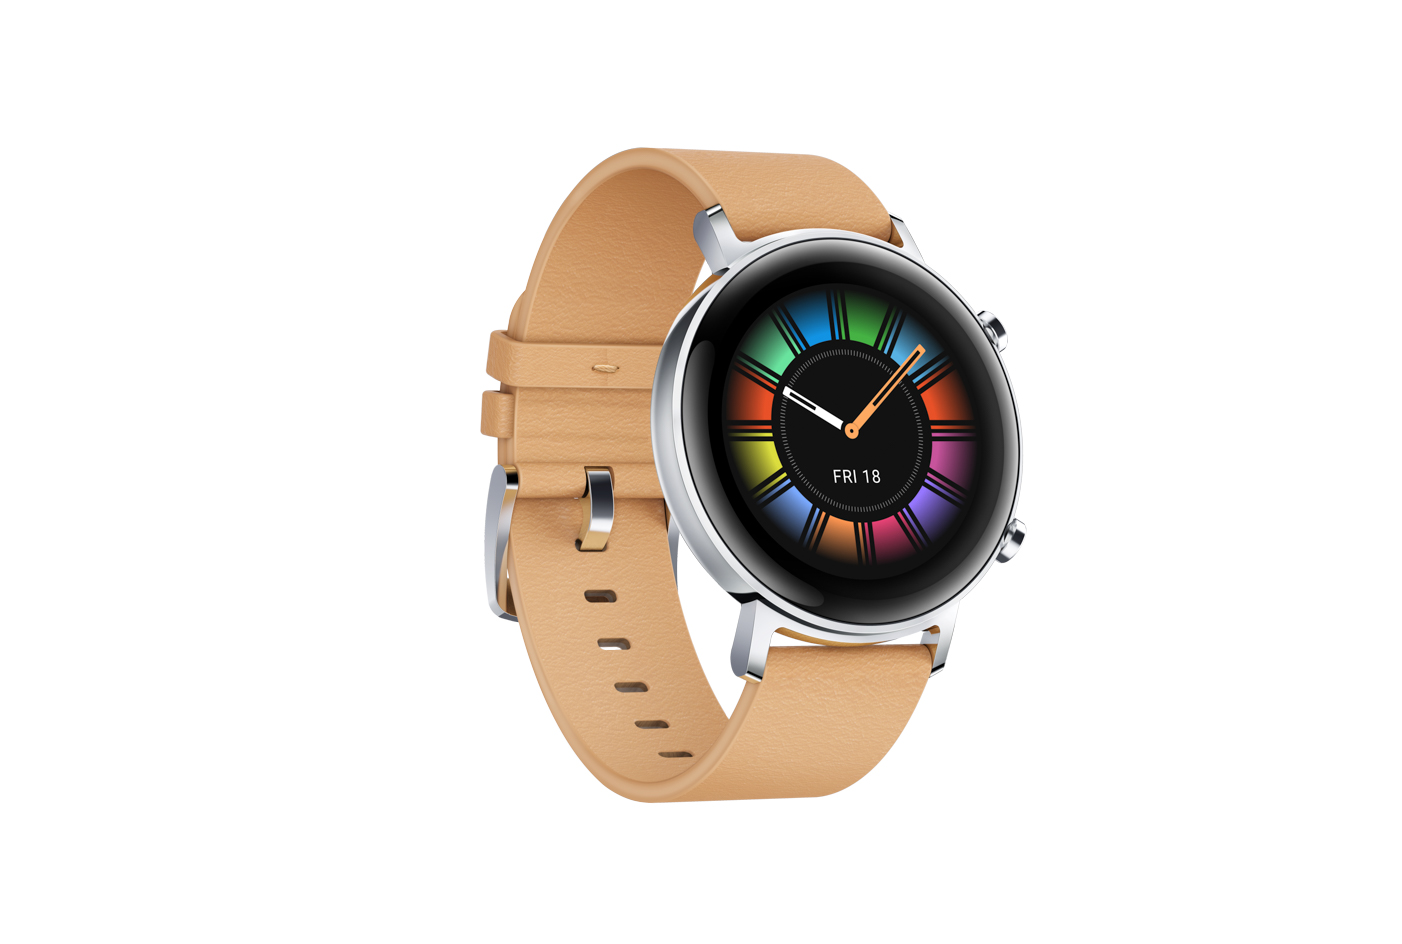 Huawei_Watch GT 2_42mm_4